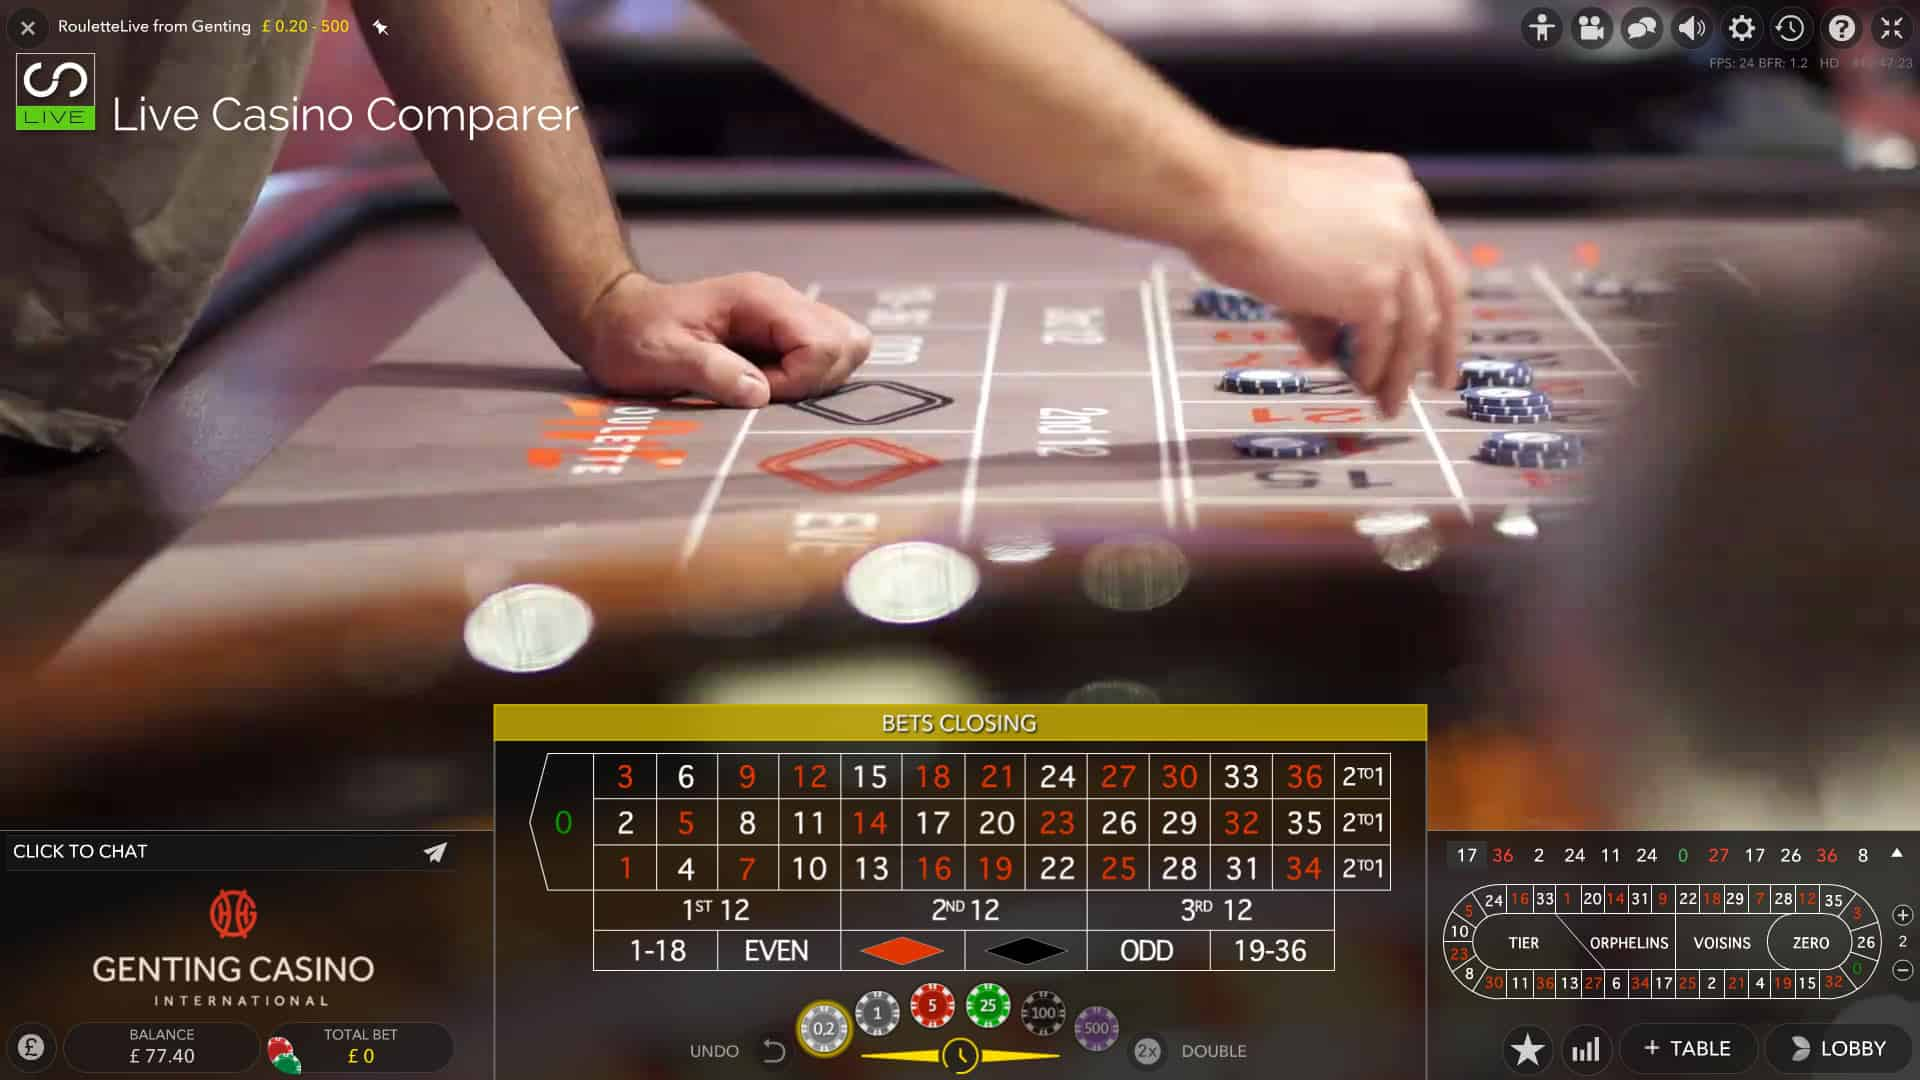 genting casino roulette minimum bet